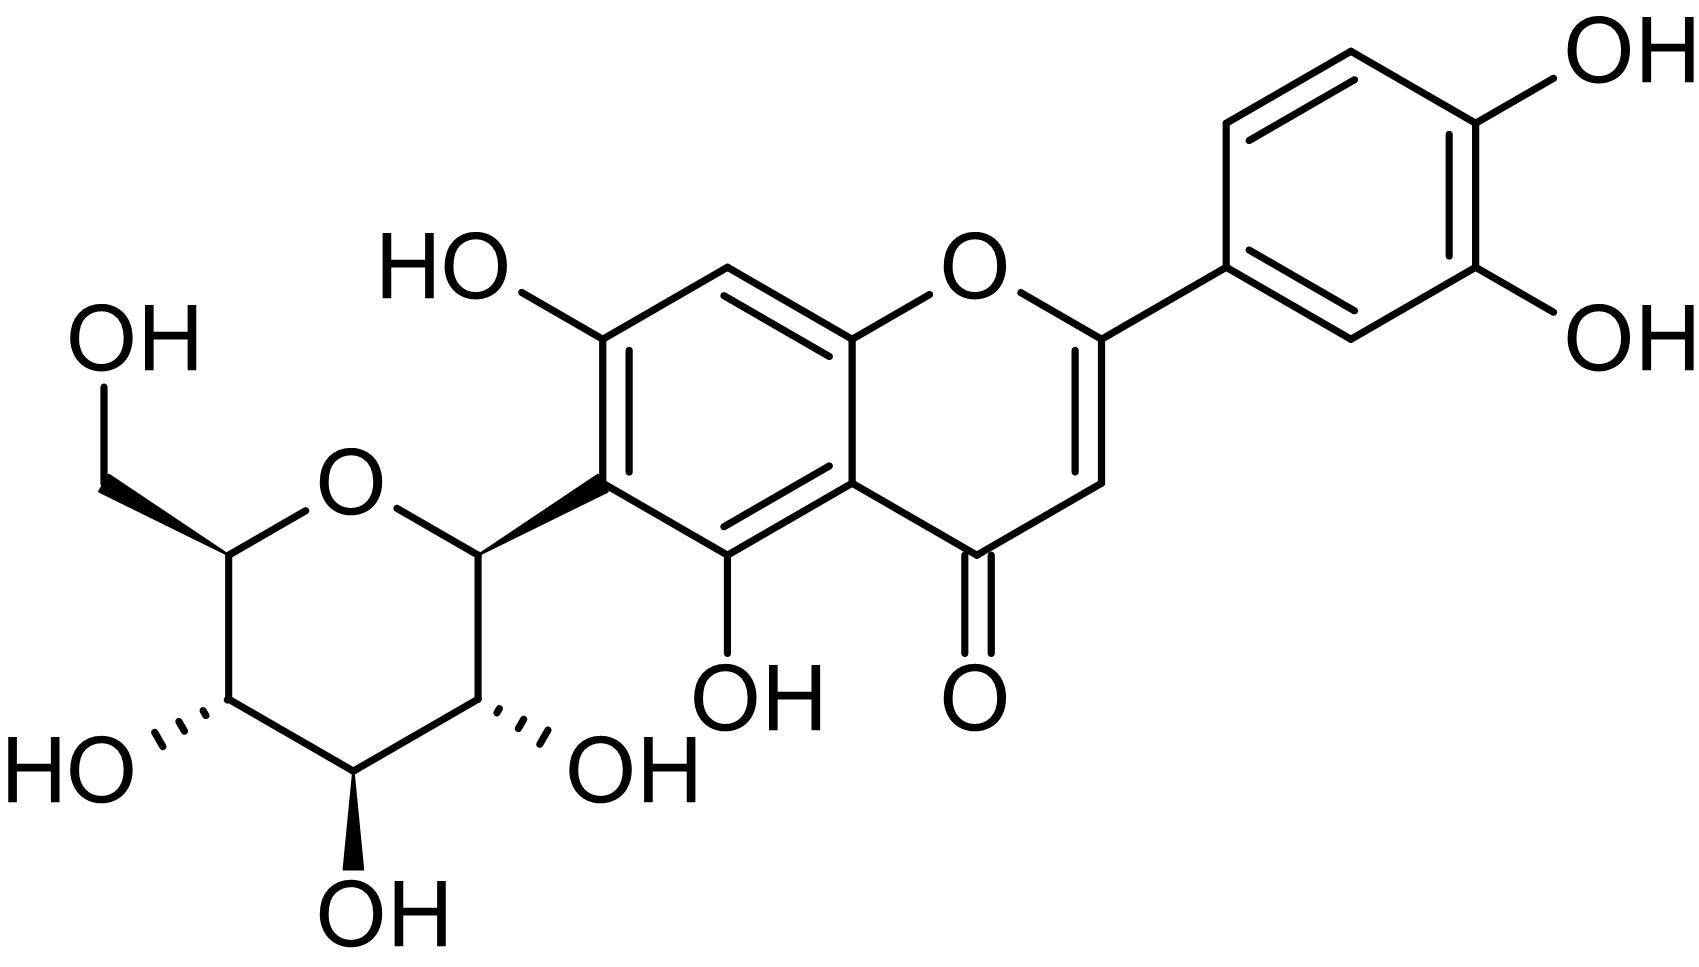 Chemical Structure - Isoorientin, Cyclooxygenase-2 inhibitor (ab145014)